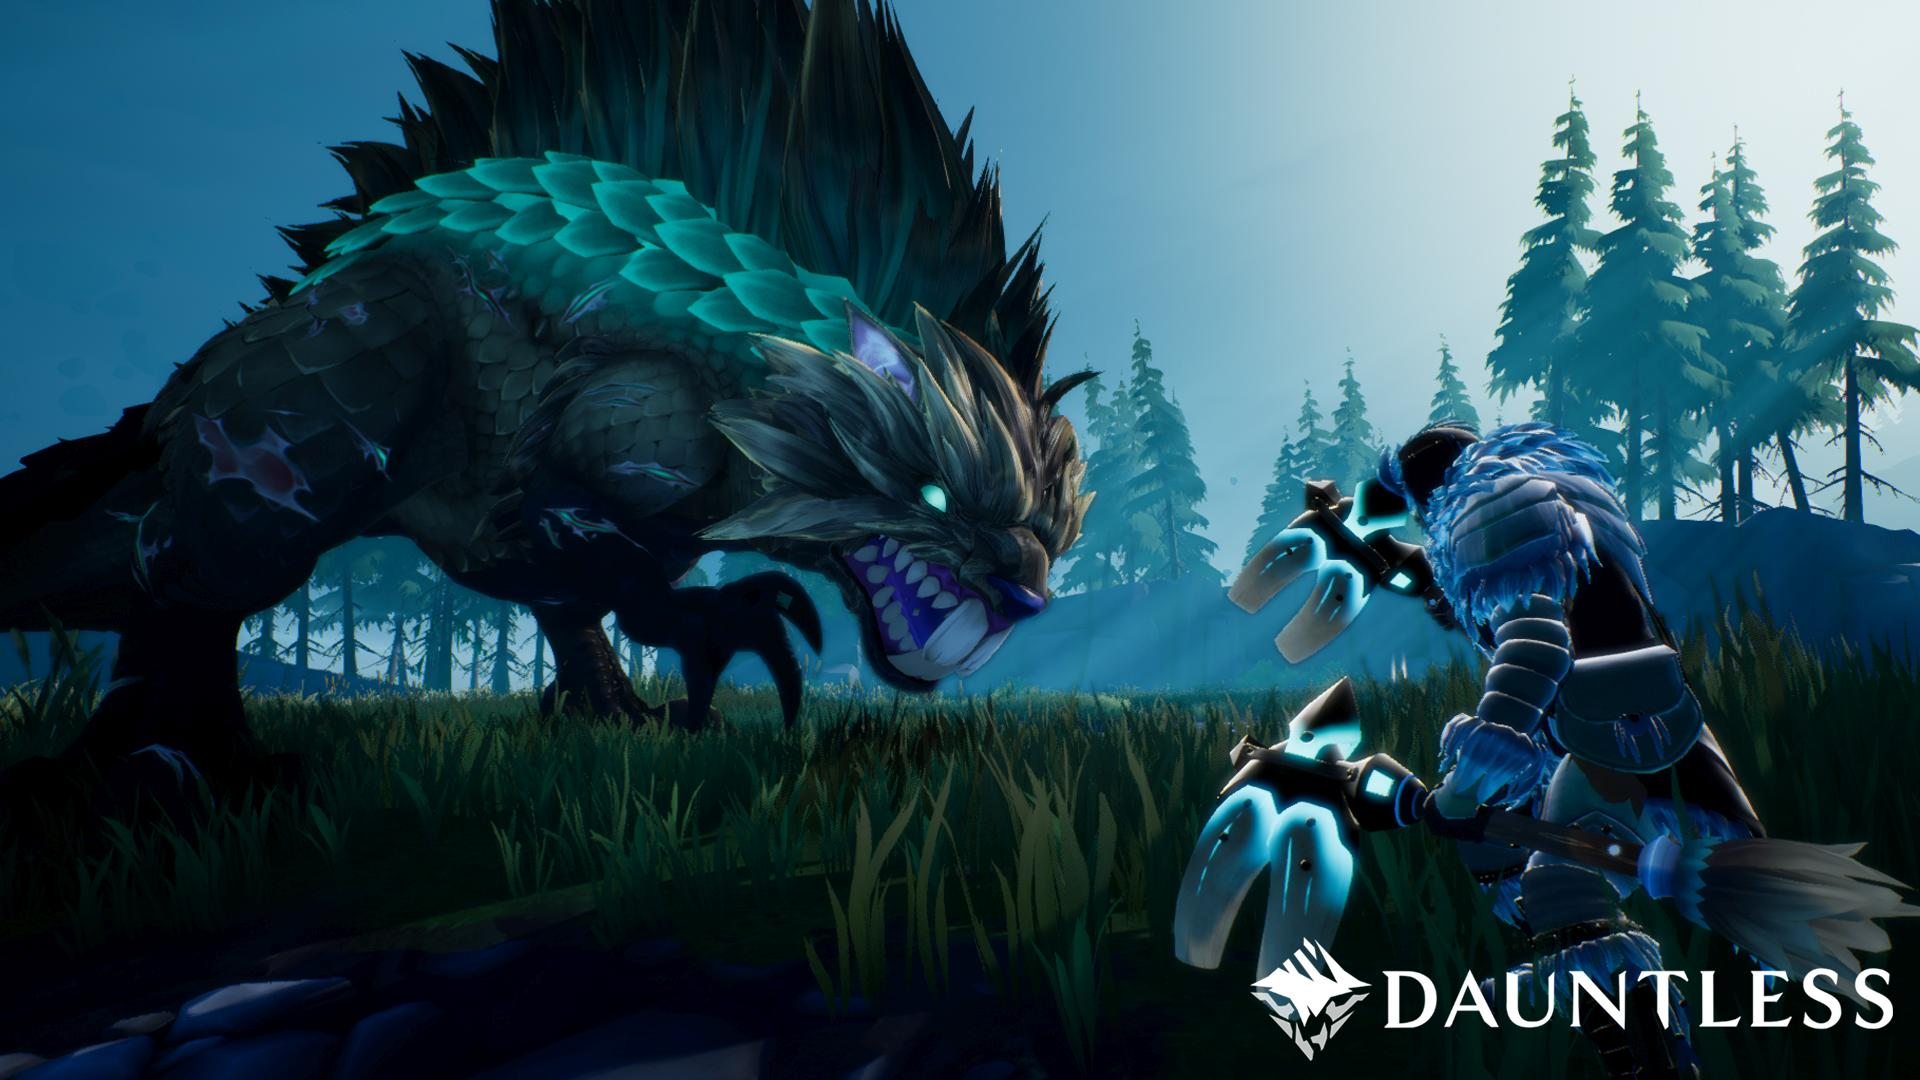 Dauntless Forge Your Legend